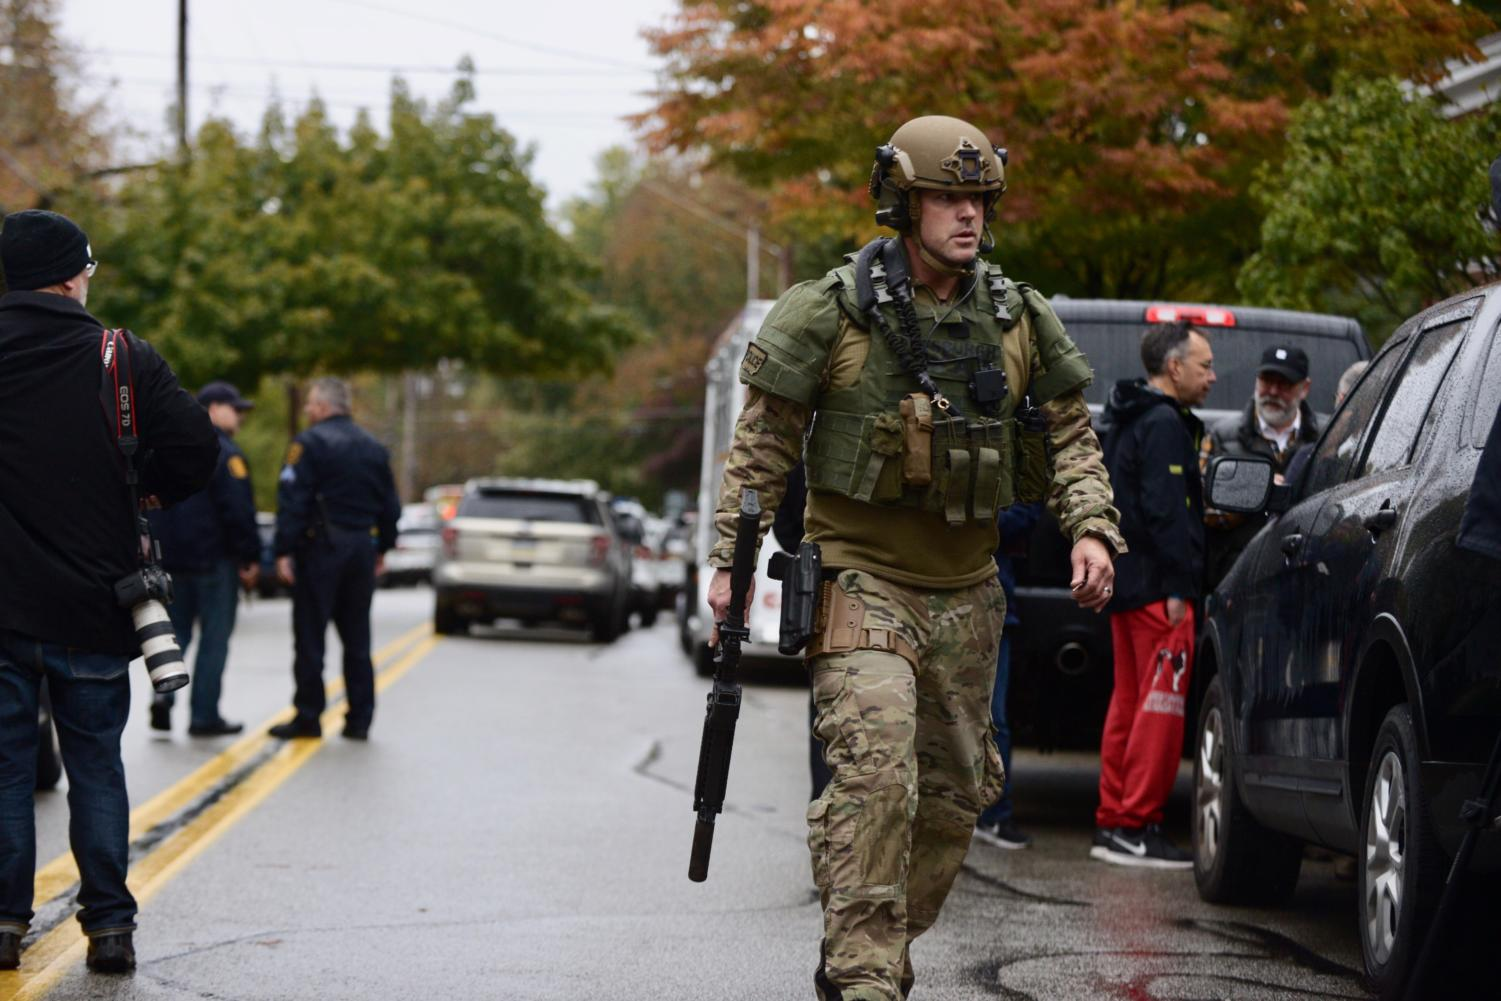 The massacre in Pittsburgh marks one of the deadliest attacks on a Jewish congregation in American history.